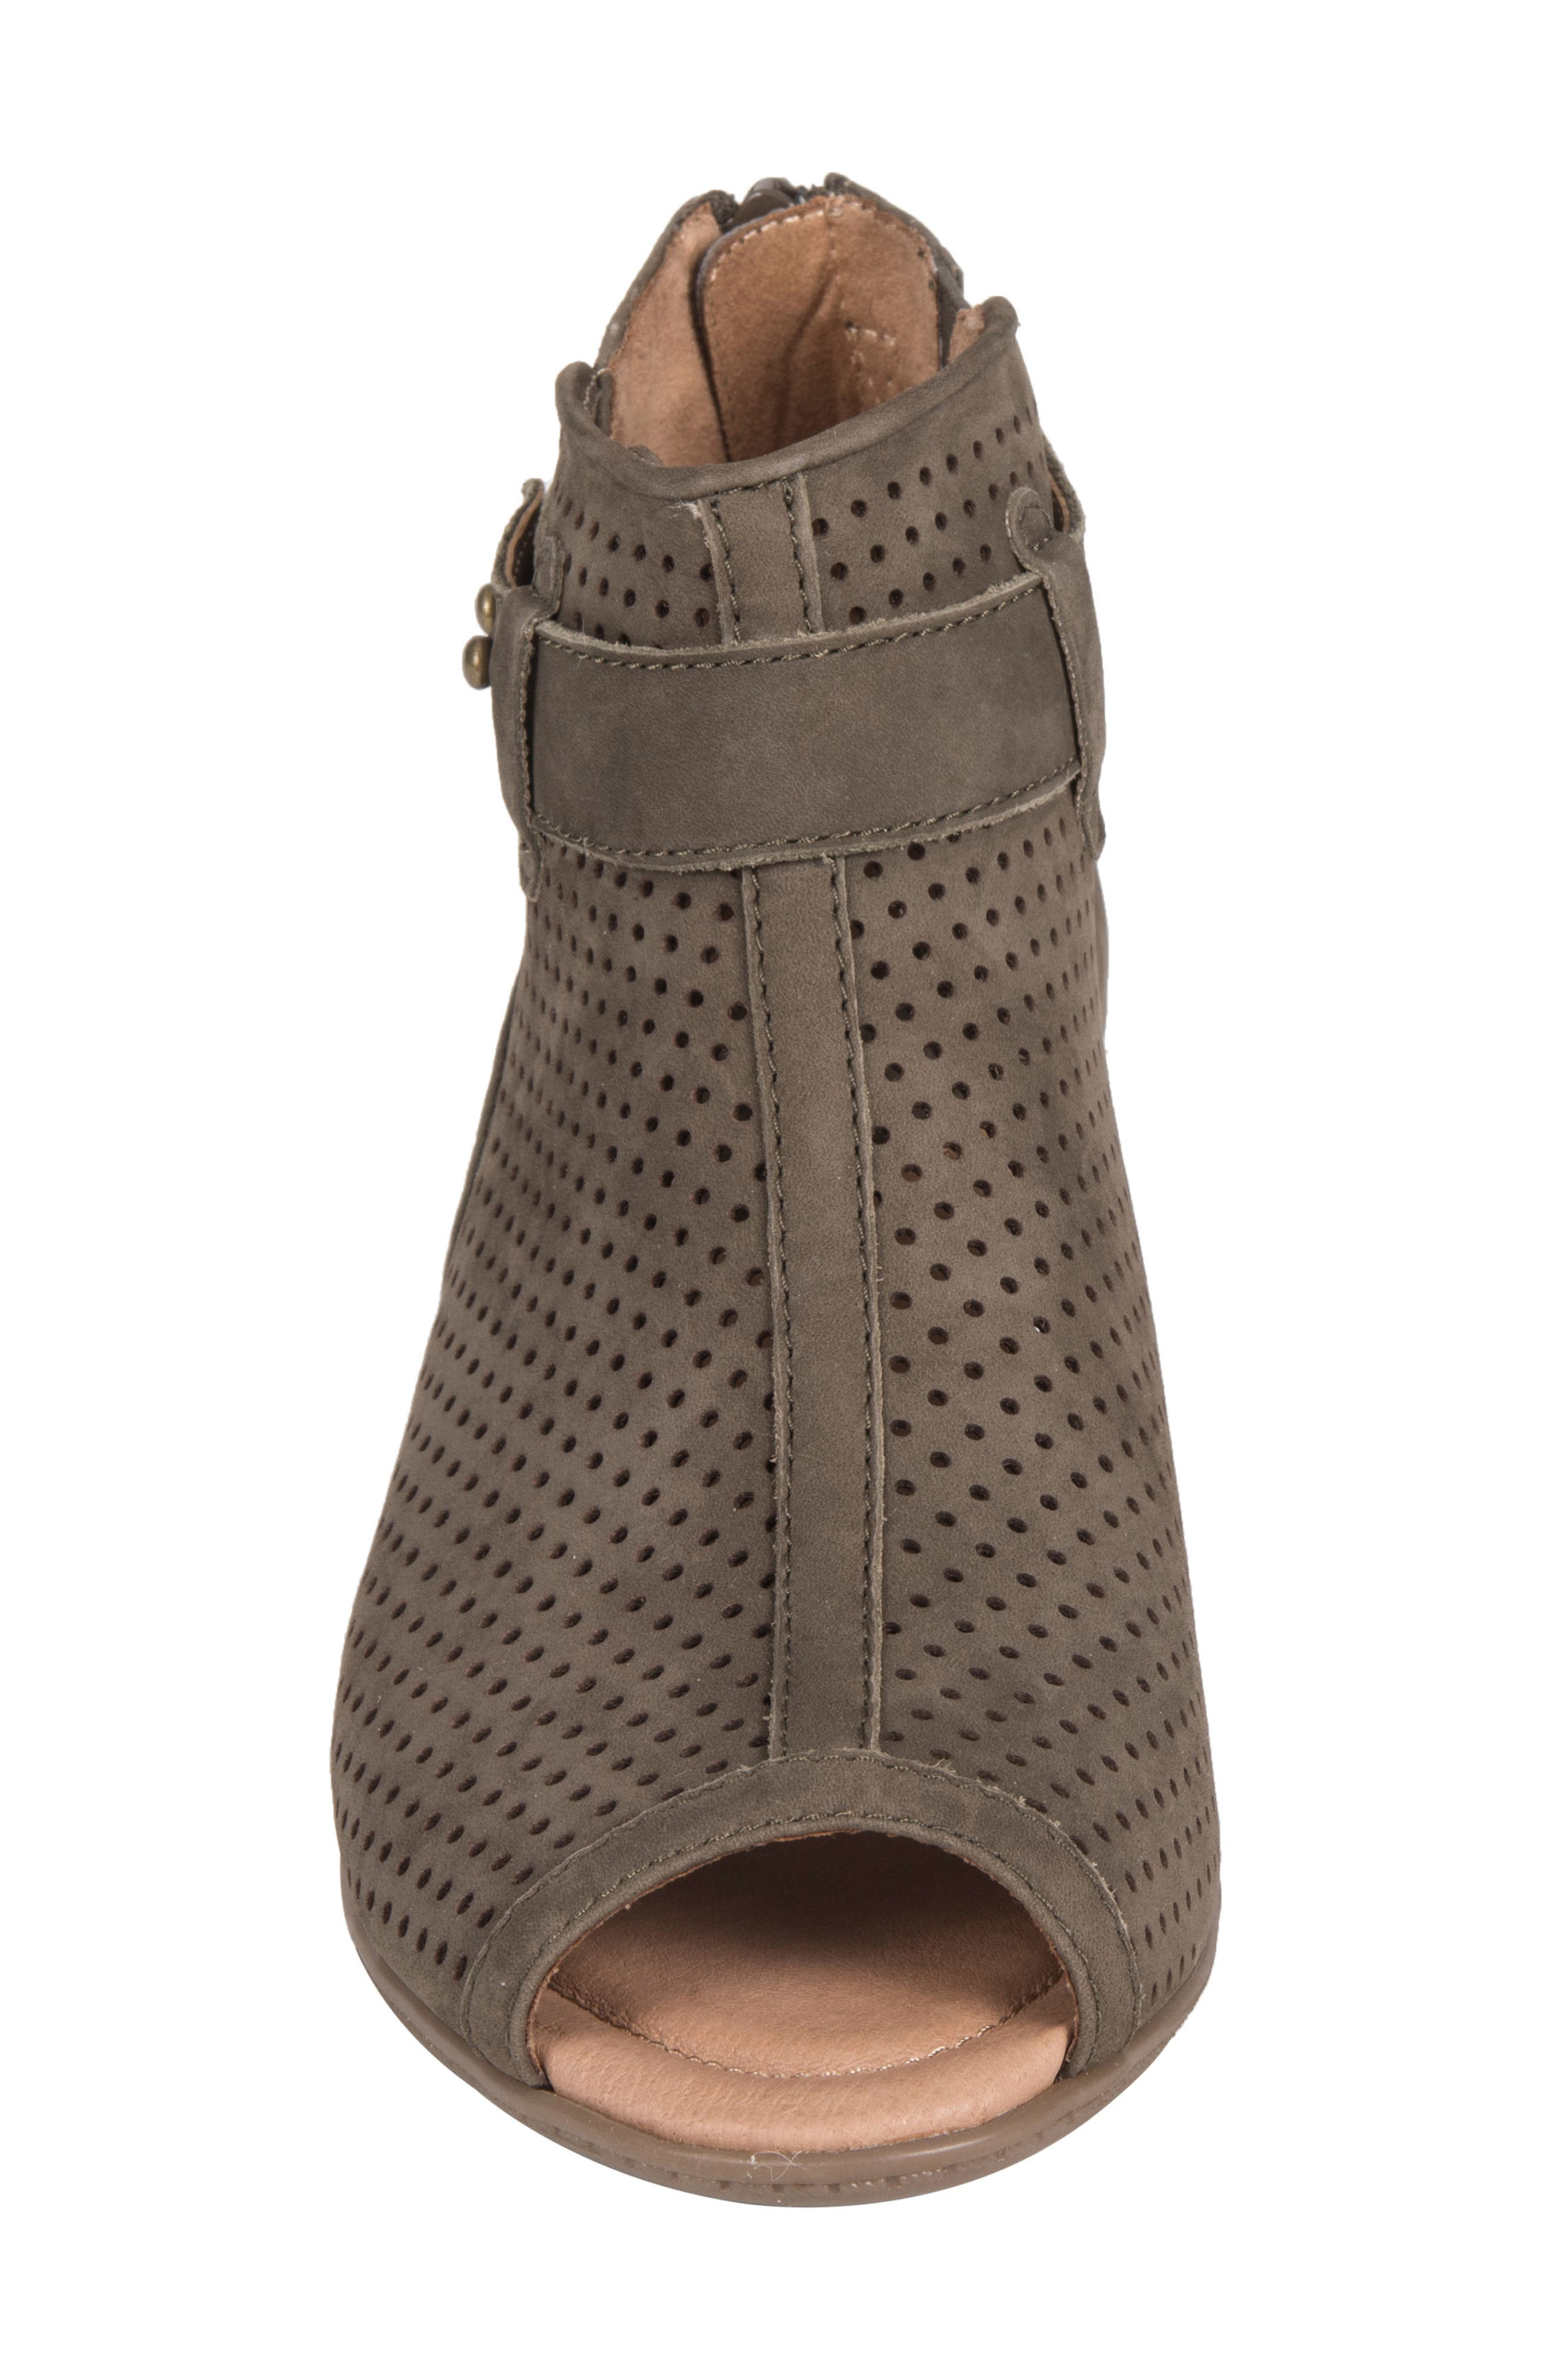 Intrepid Peep Toe Bootie,                             Alternate thumbnail 4, color,                             DARK OLIVE NUBUCK